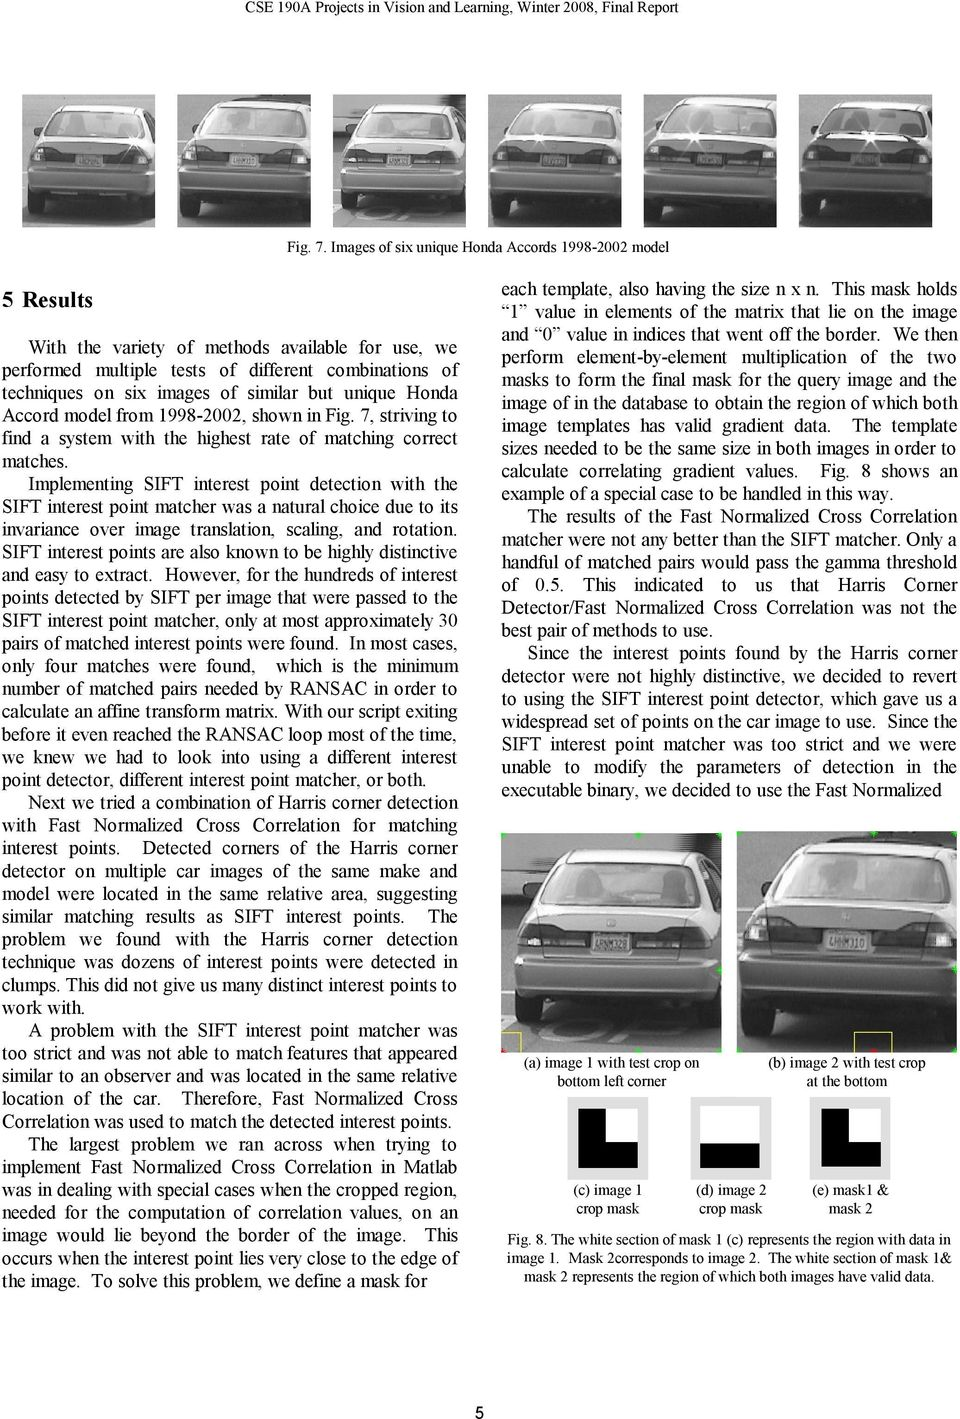 similar but unique Honda Accord model from 1998-2002, shown in Fig. 7, striving to find a system with the highest rate of matching correct matches.